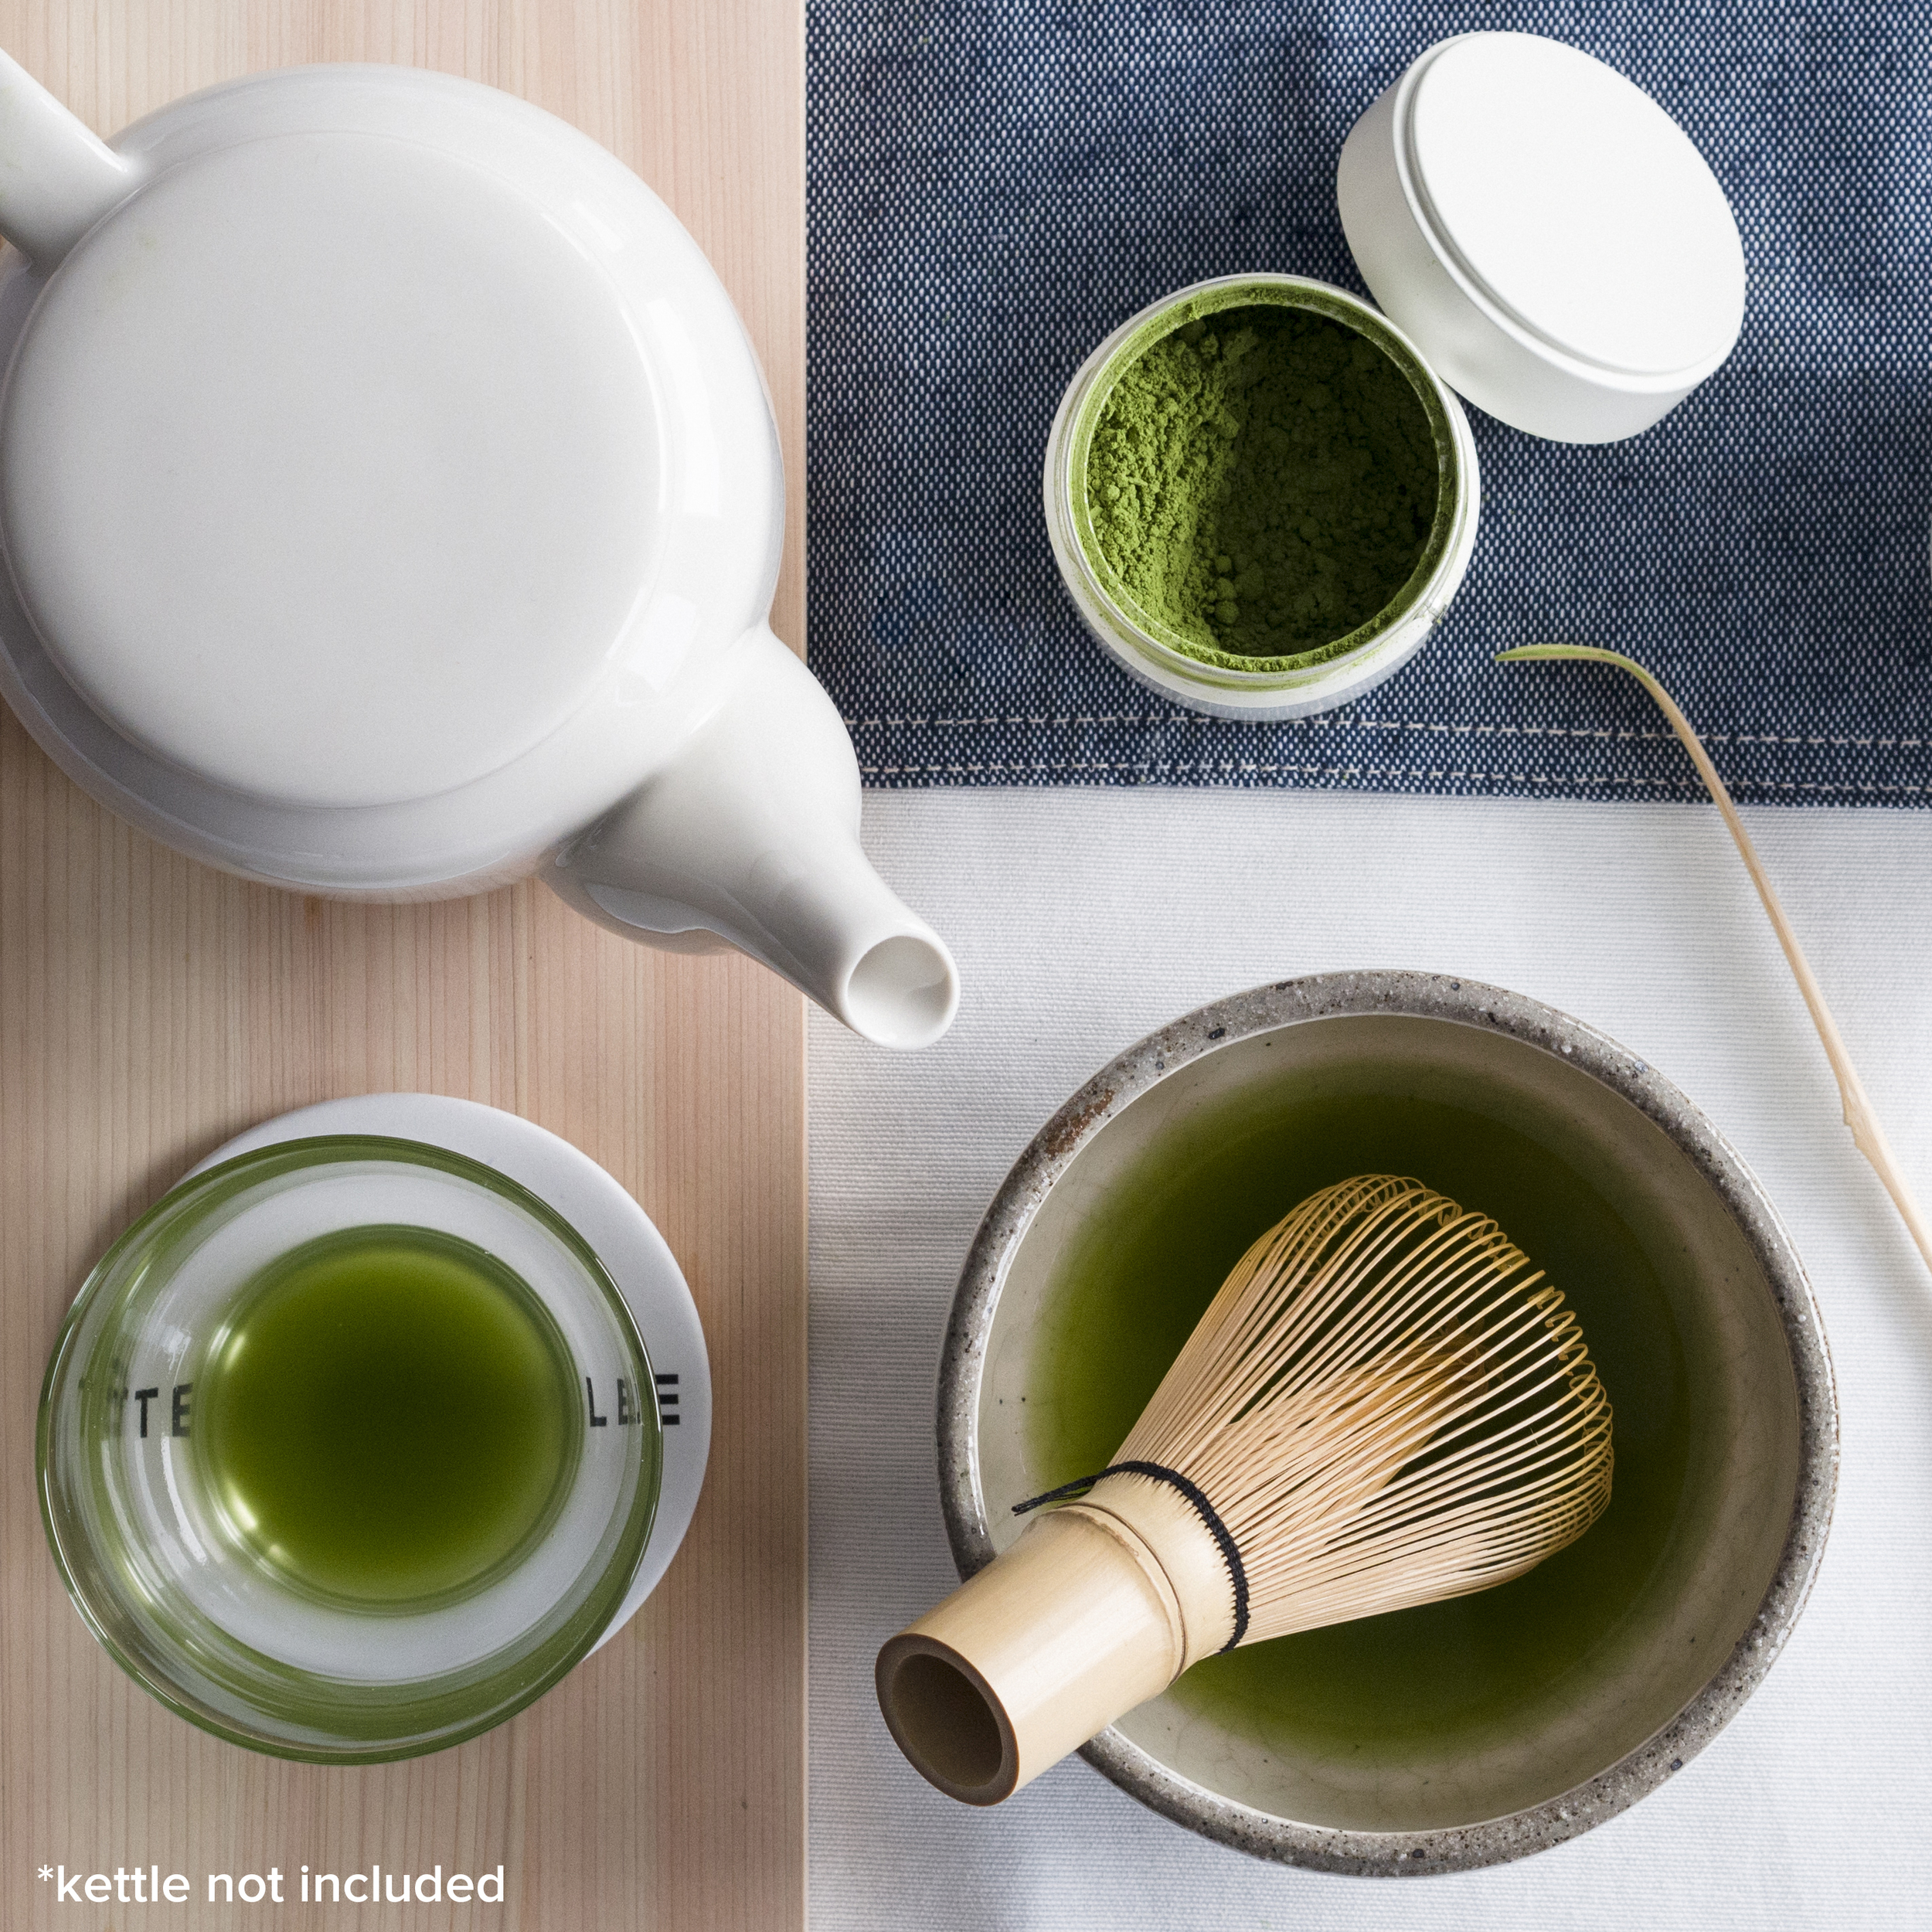 Our matcha sets are the perfect present for the all the foodies out there. Did you know matcha was one of the biggest food trends of the year? Our matcha starter set comes with all the tools to create the perfect bowl of this super-tea.